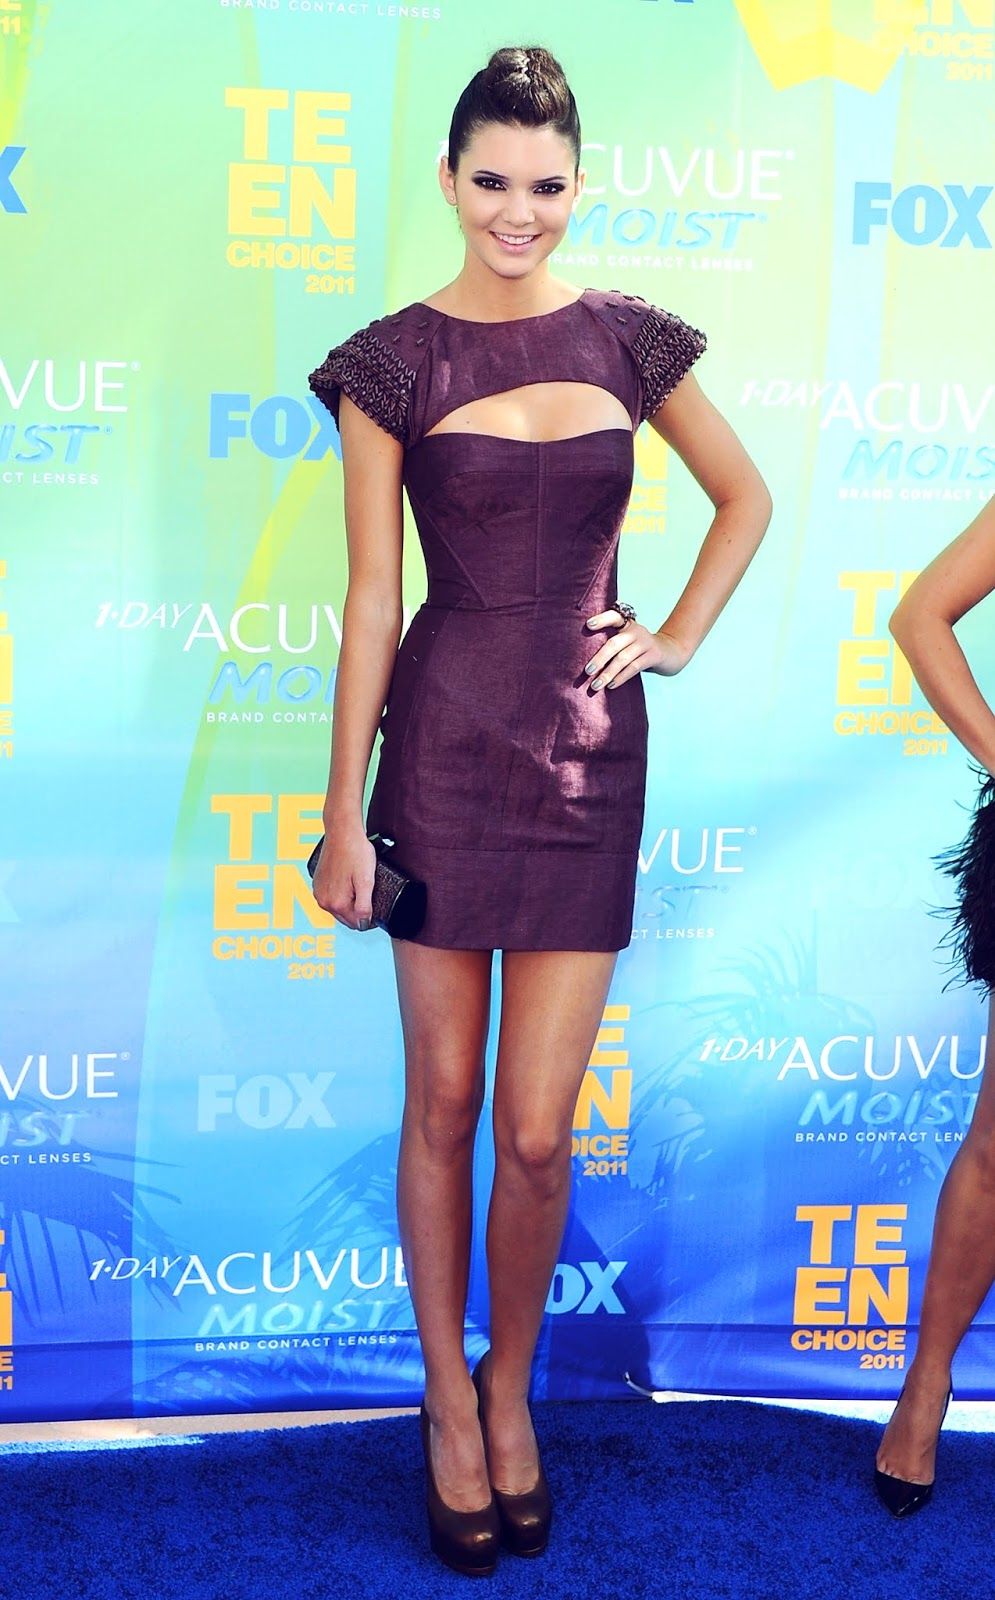 17 - Teen Choice Awards in August 11, 2011